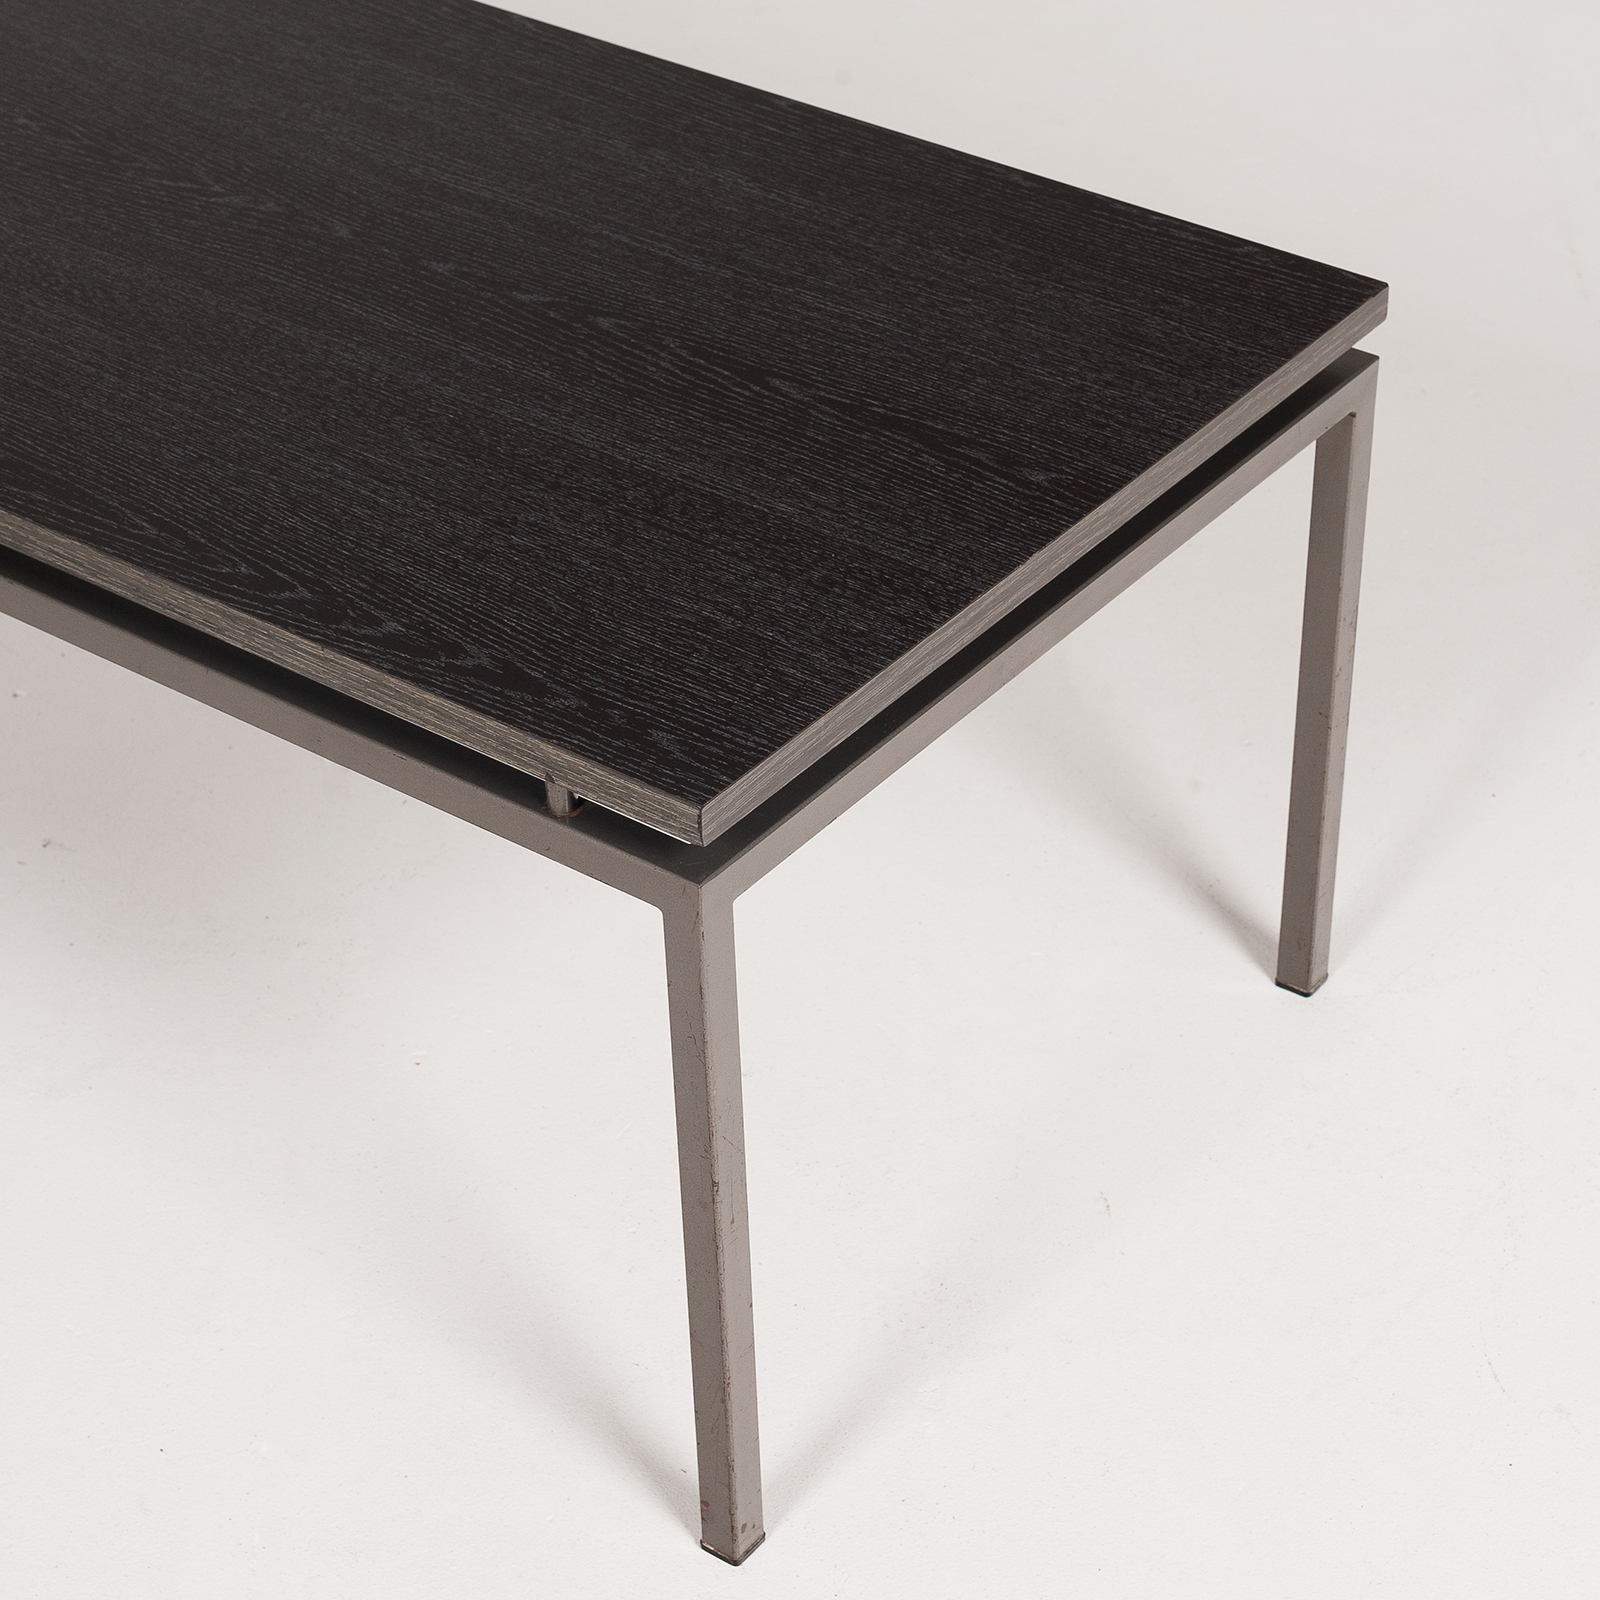 Coffee Table By Rob Parry For Gelderland, 1960s, The Netherlands 5